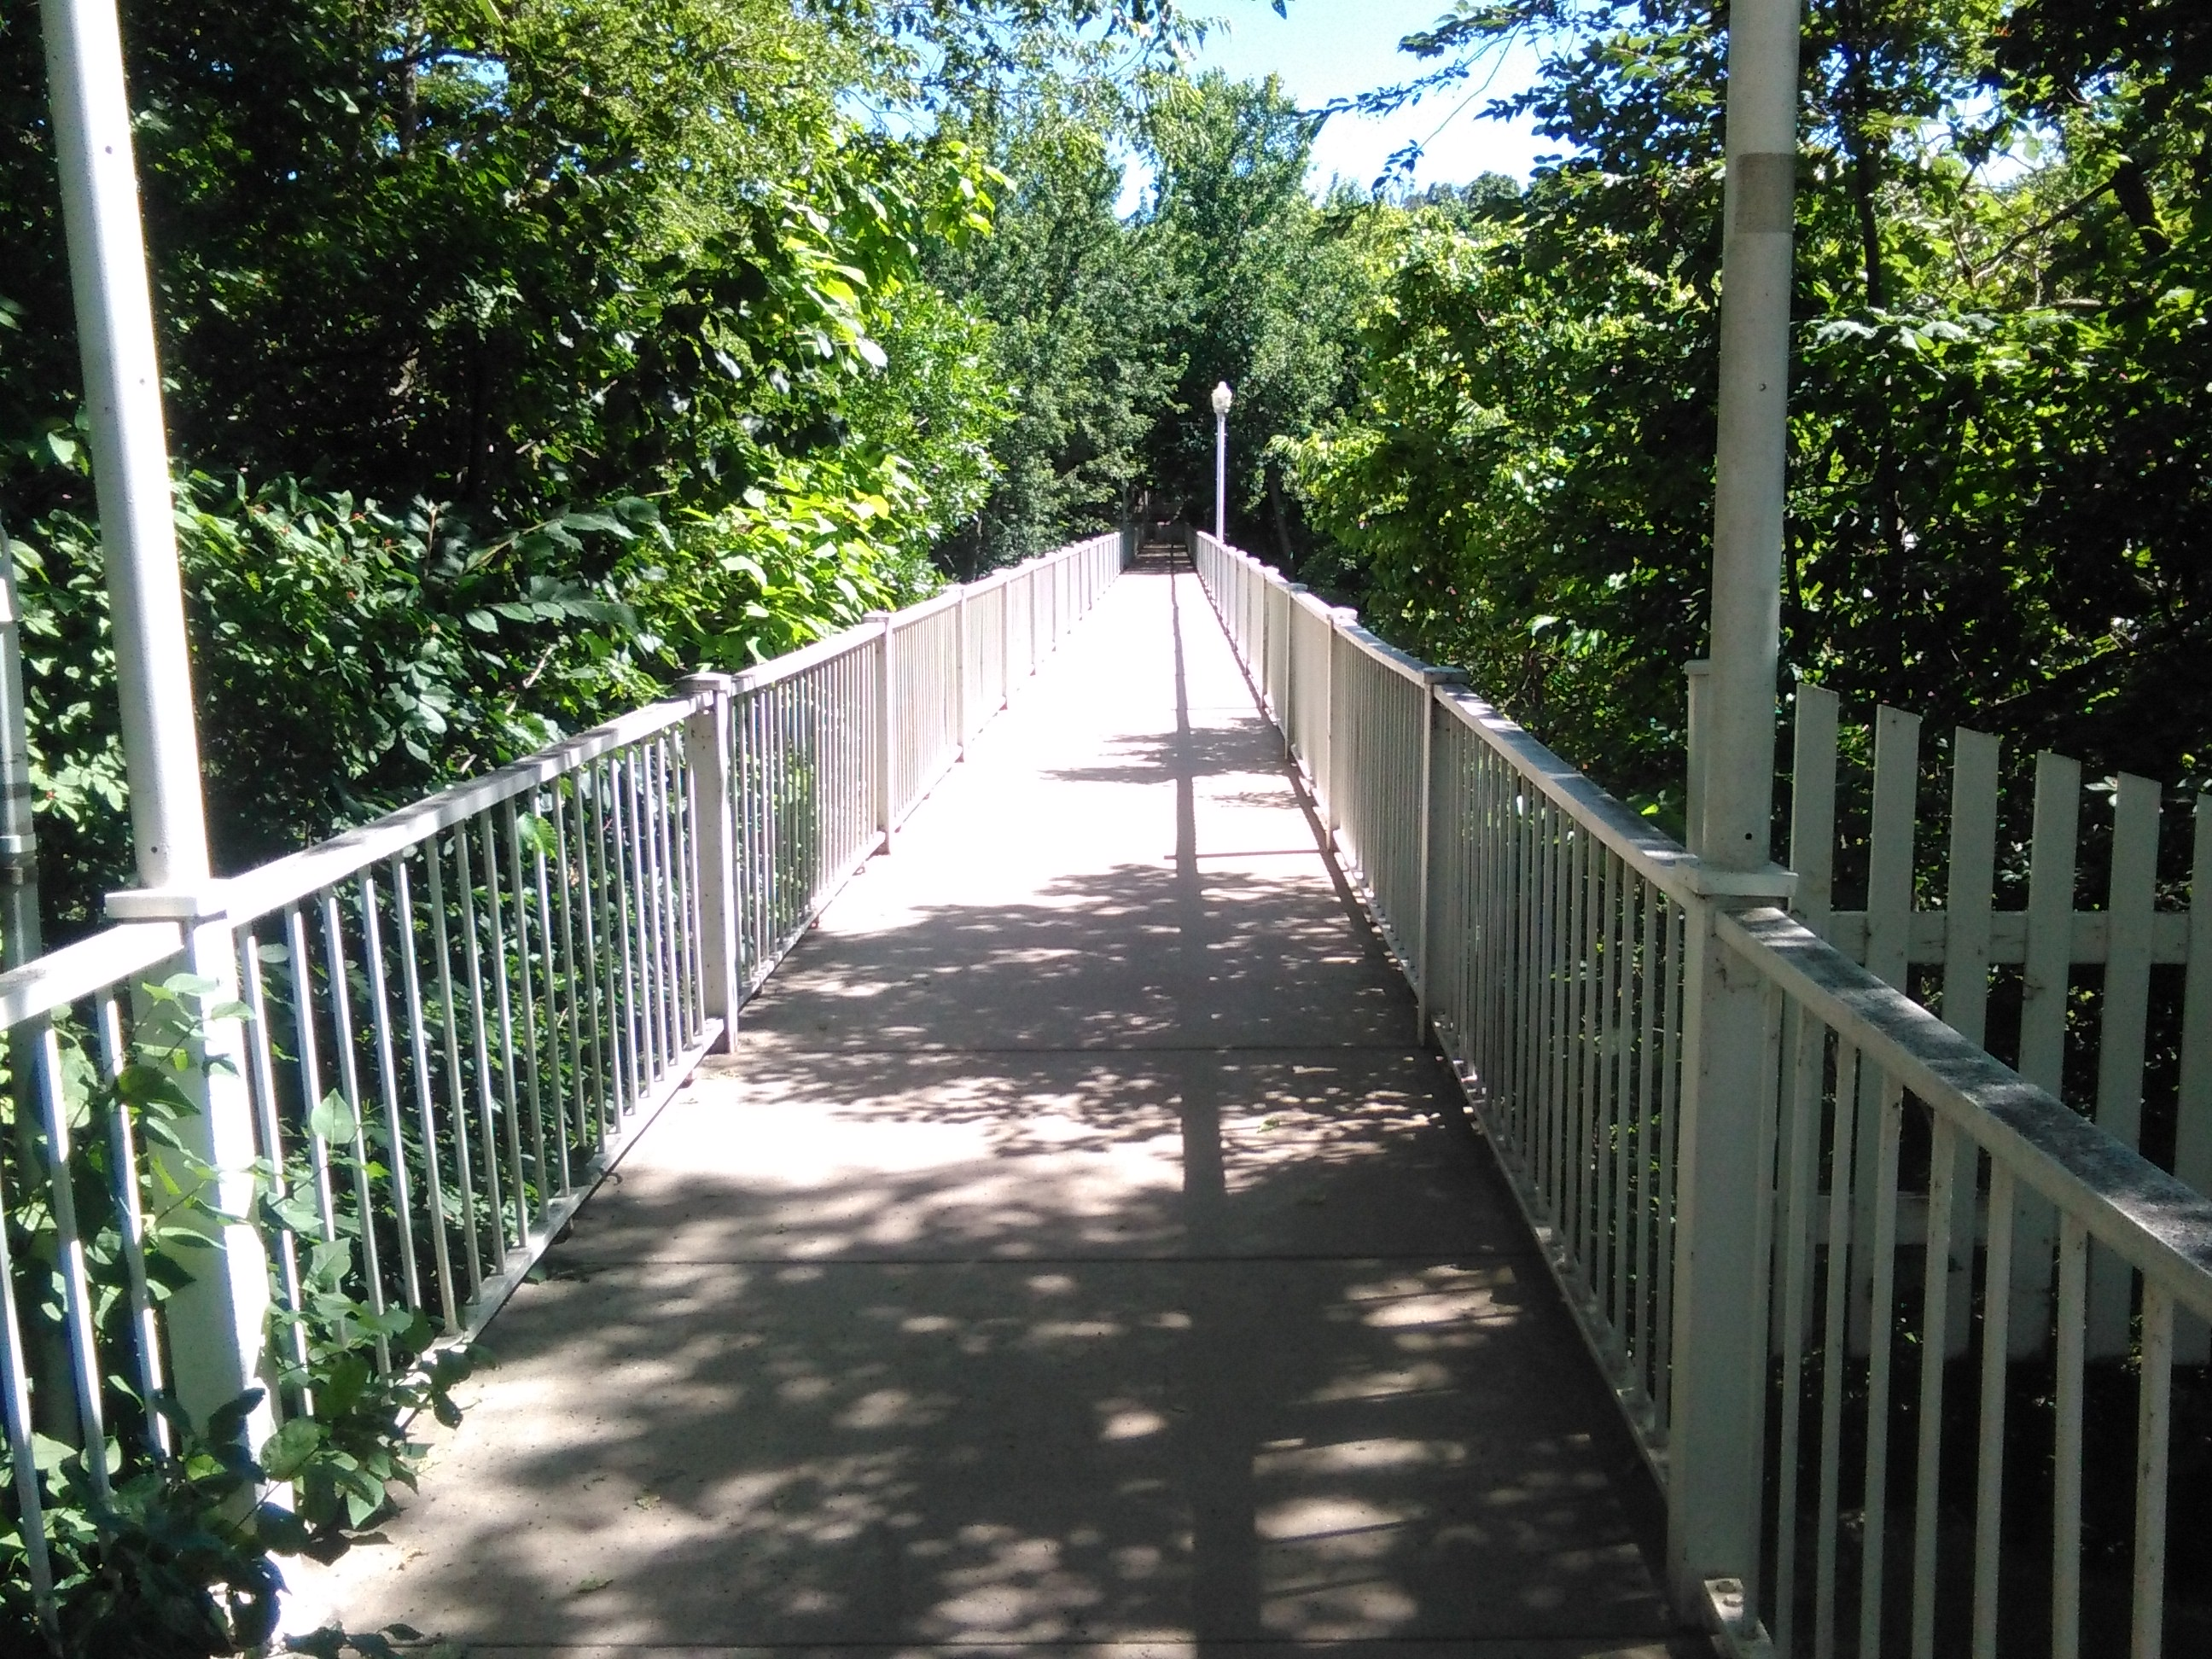 On 2nd St. SE in Mason City over Willow Creek the bridge connects